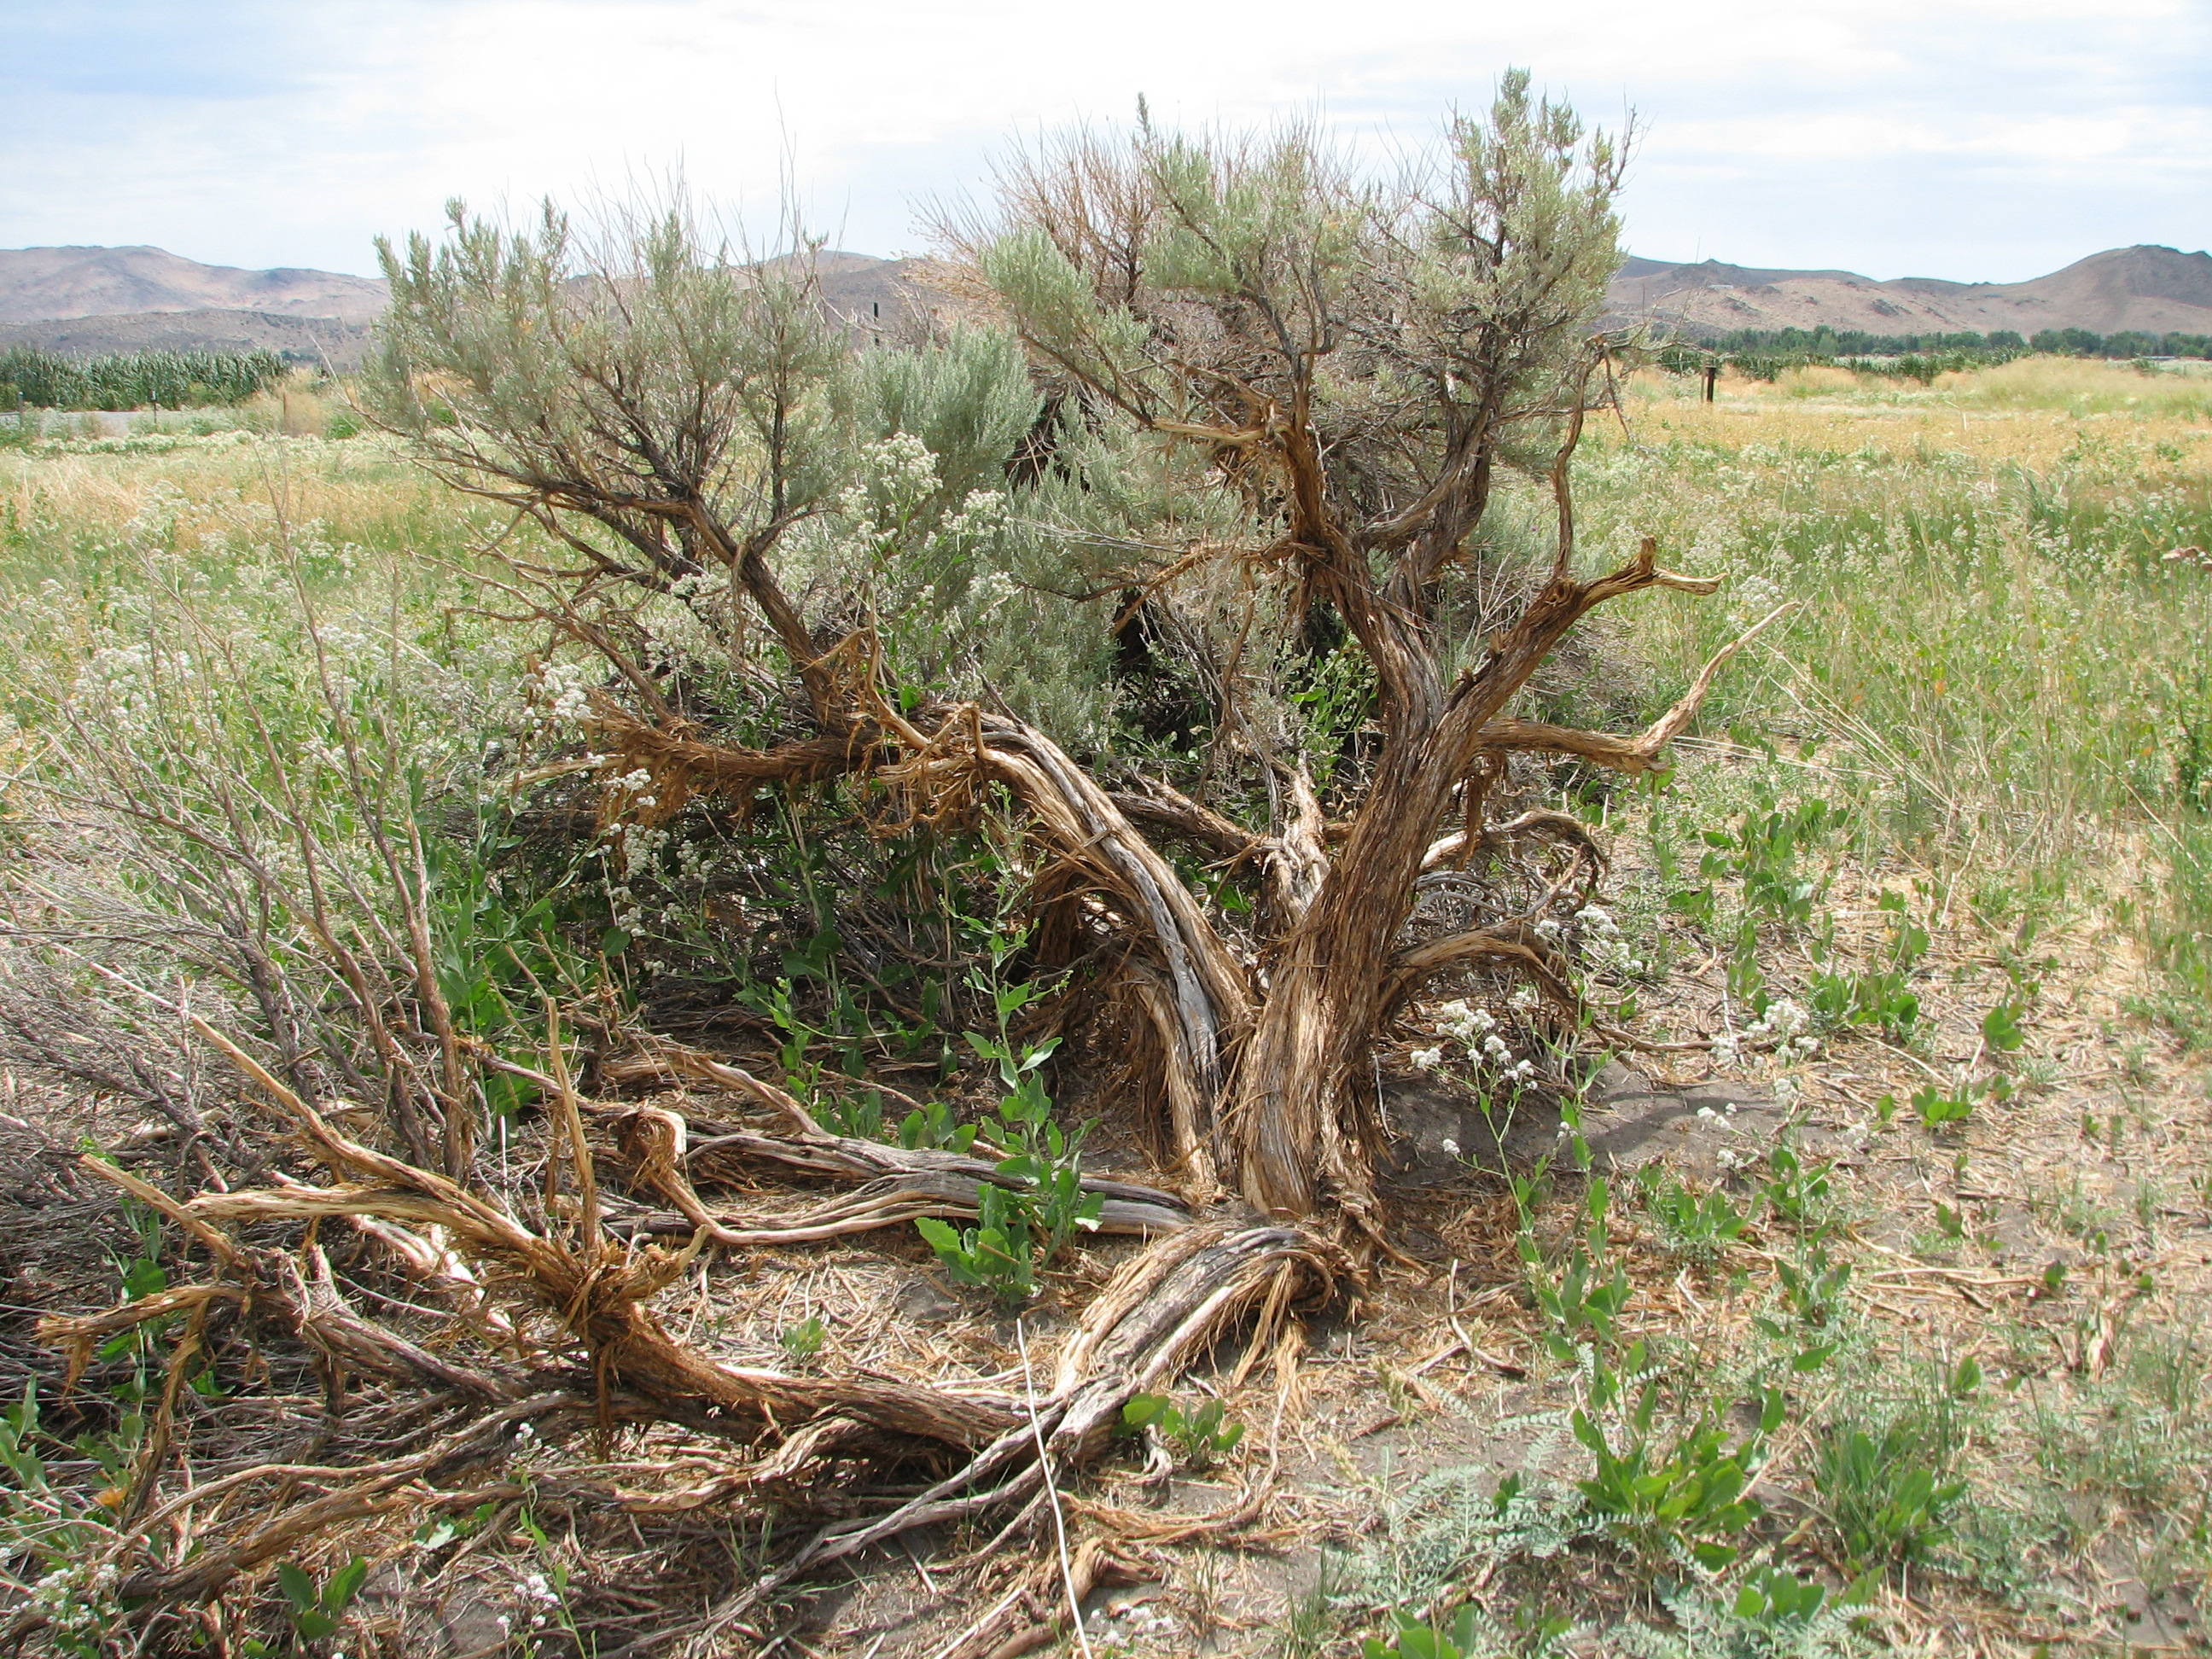 File:Sagebrush with shattered trunk.jpg - Wikipedia